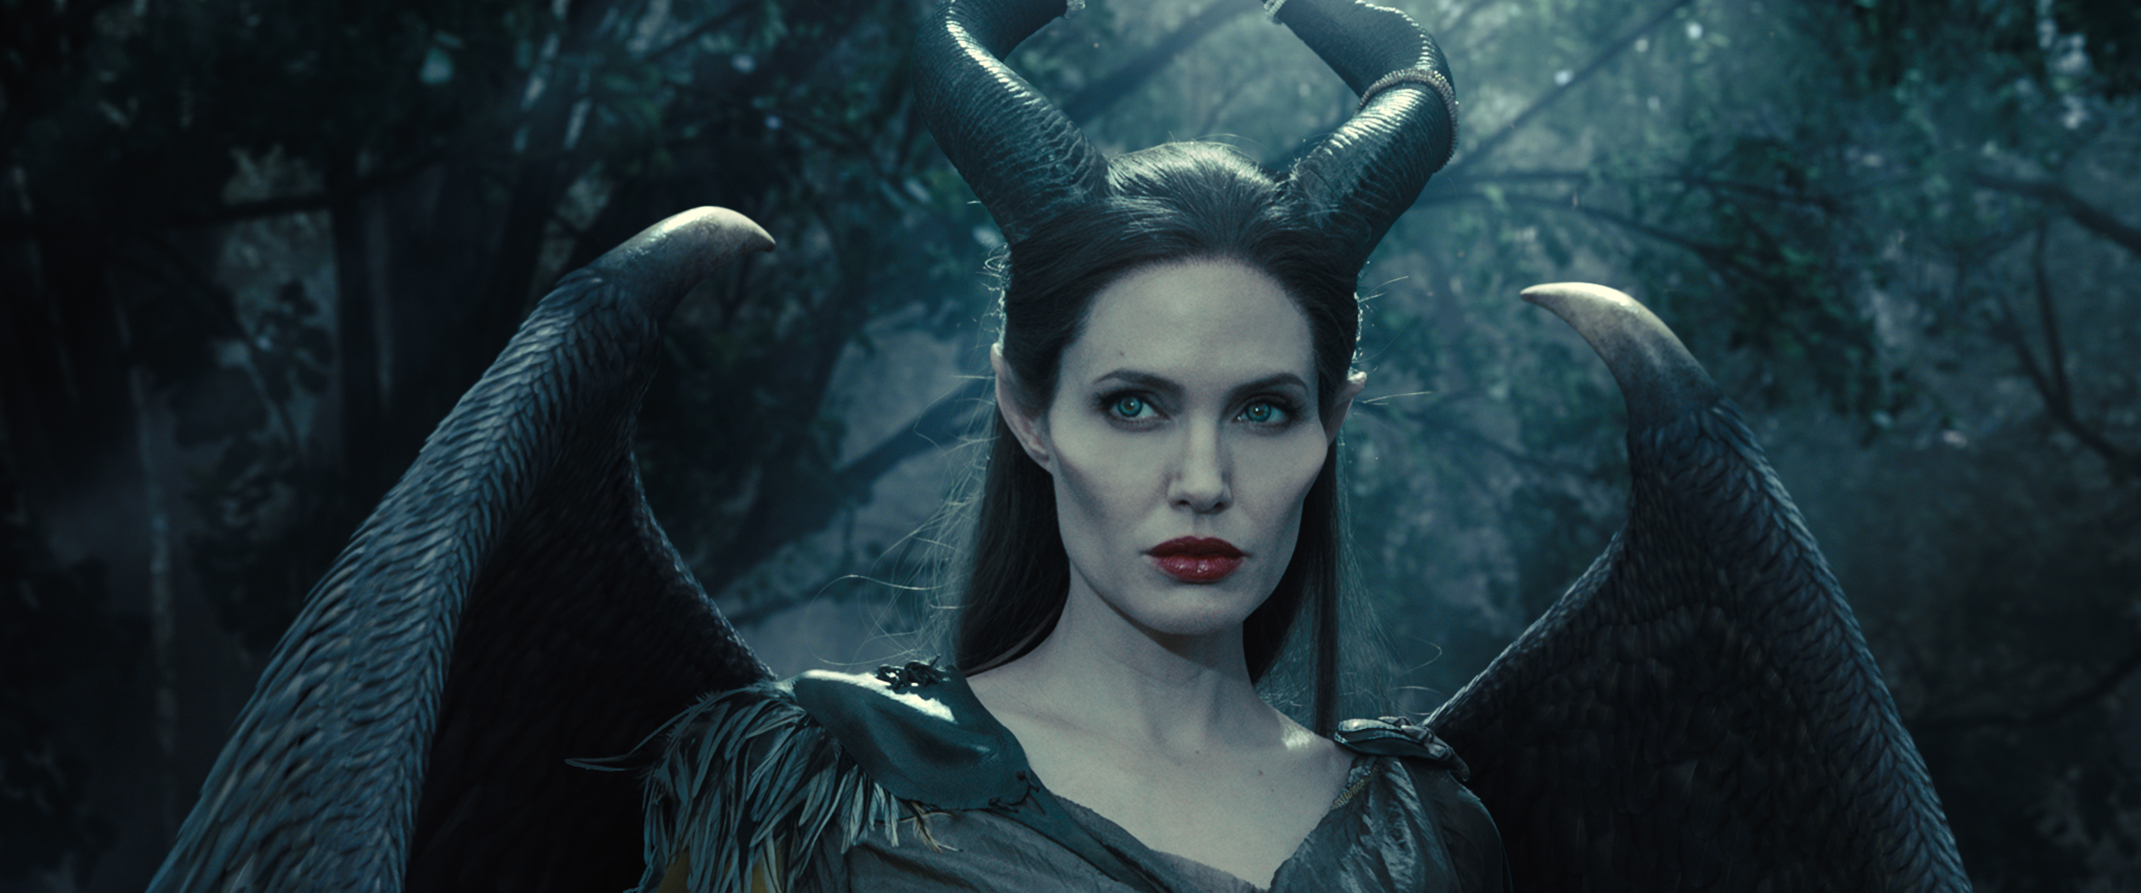 Maleficent Movie Clips And Behind The Scenes Footage Collider